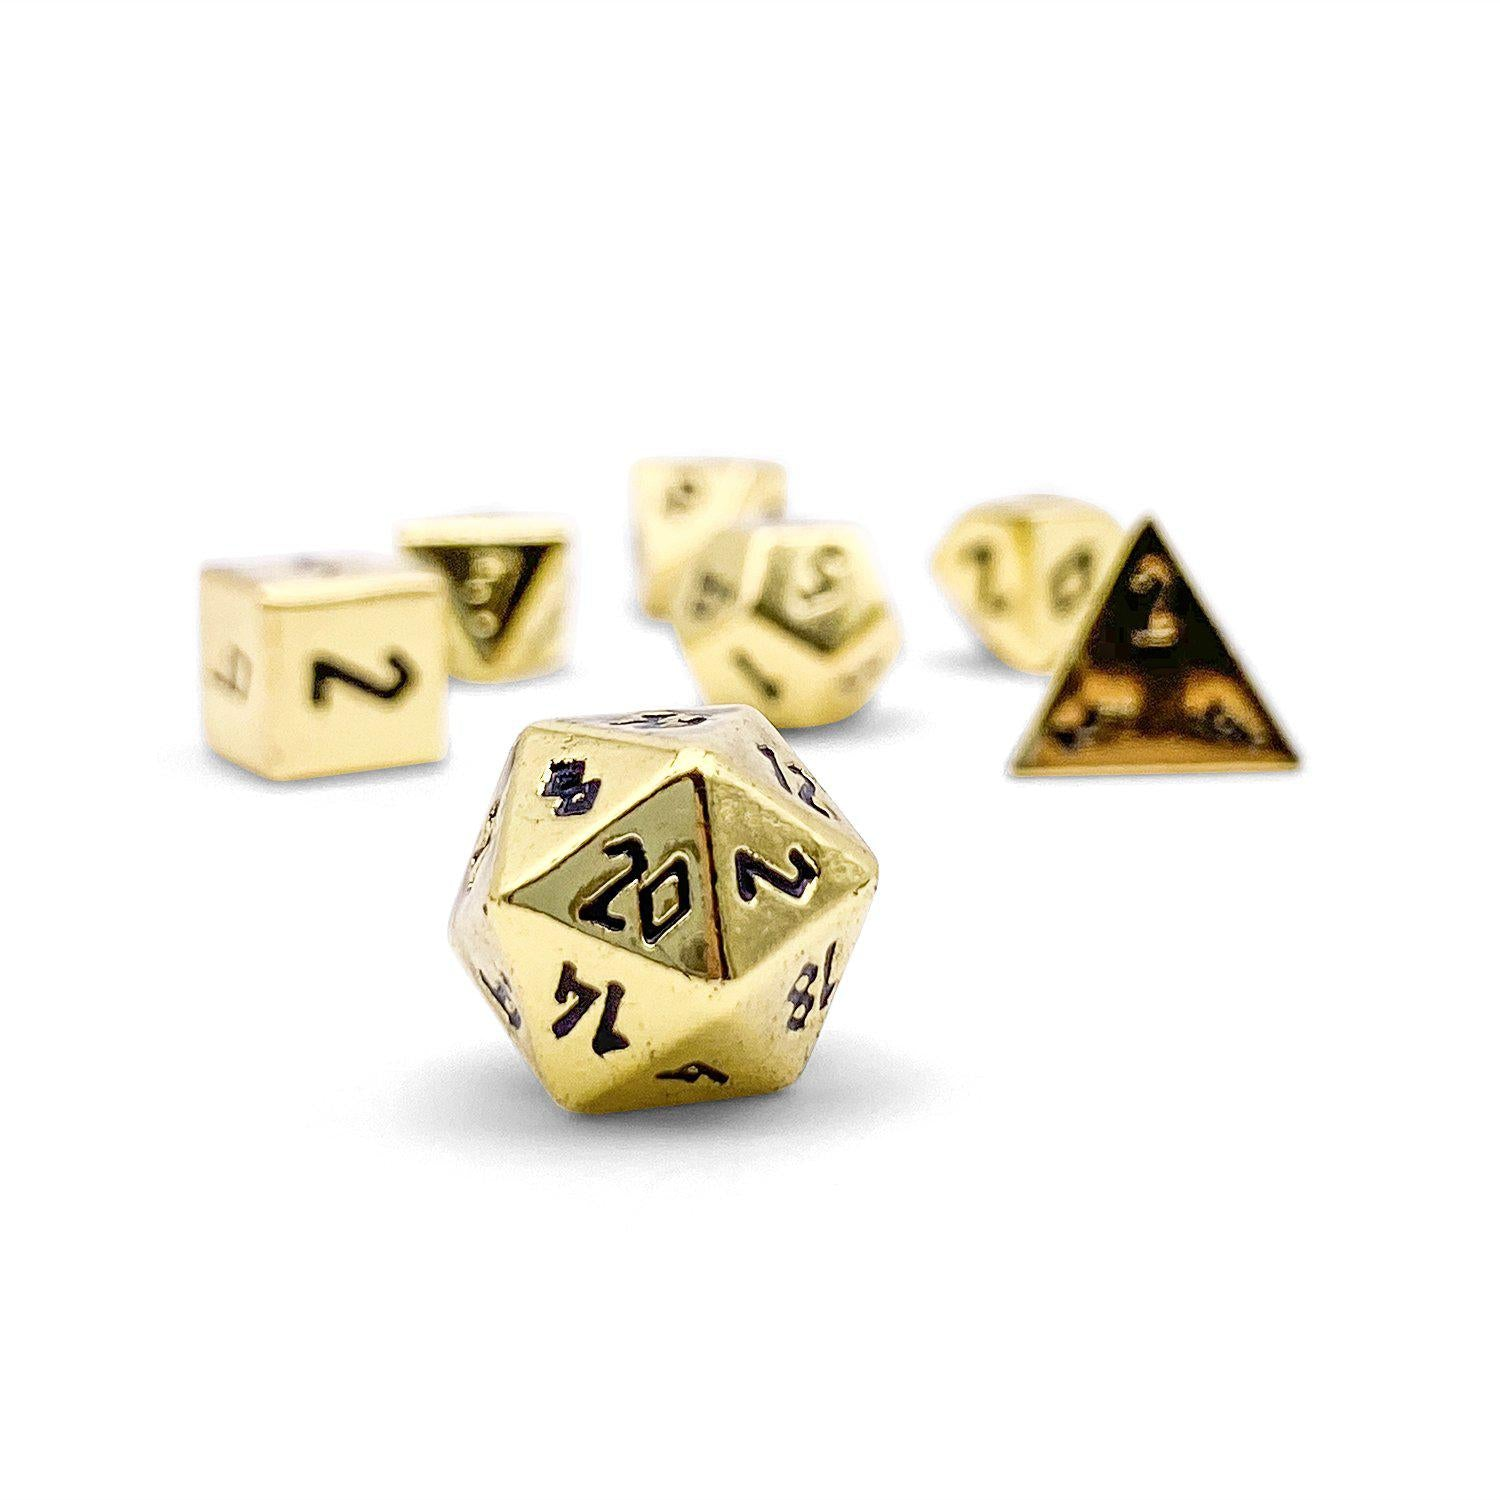 Dead Mans Gold Pebble ™ Dice - 10mm Alloy Mini Polyhedral Dice Set